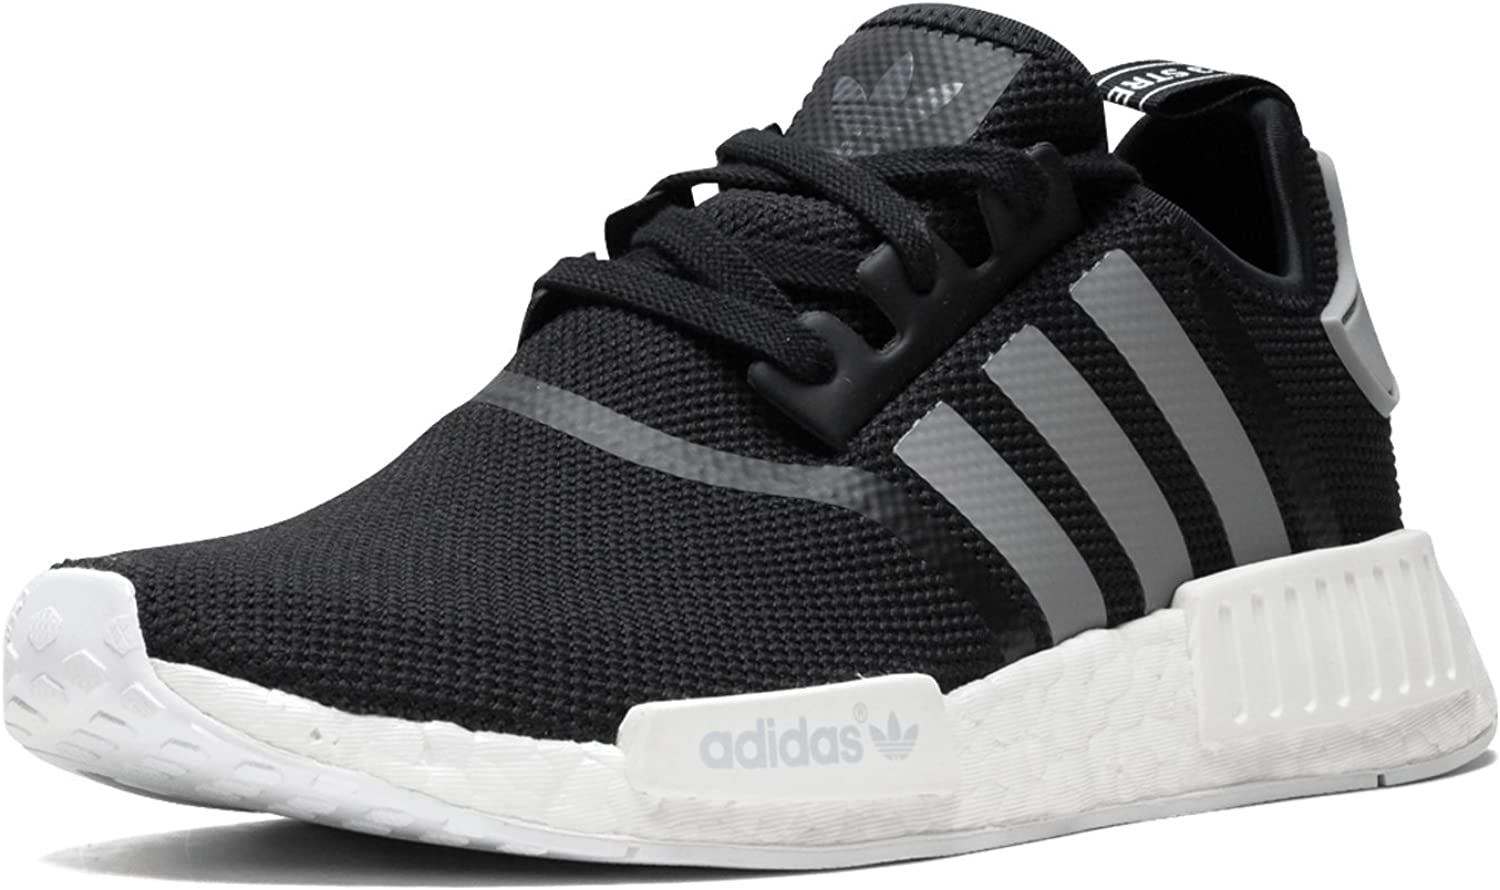 New Adidas Nmd R1: : Chaussures et Sacs